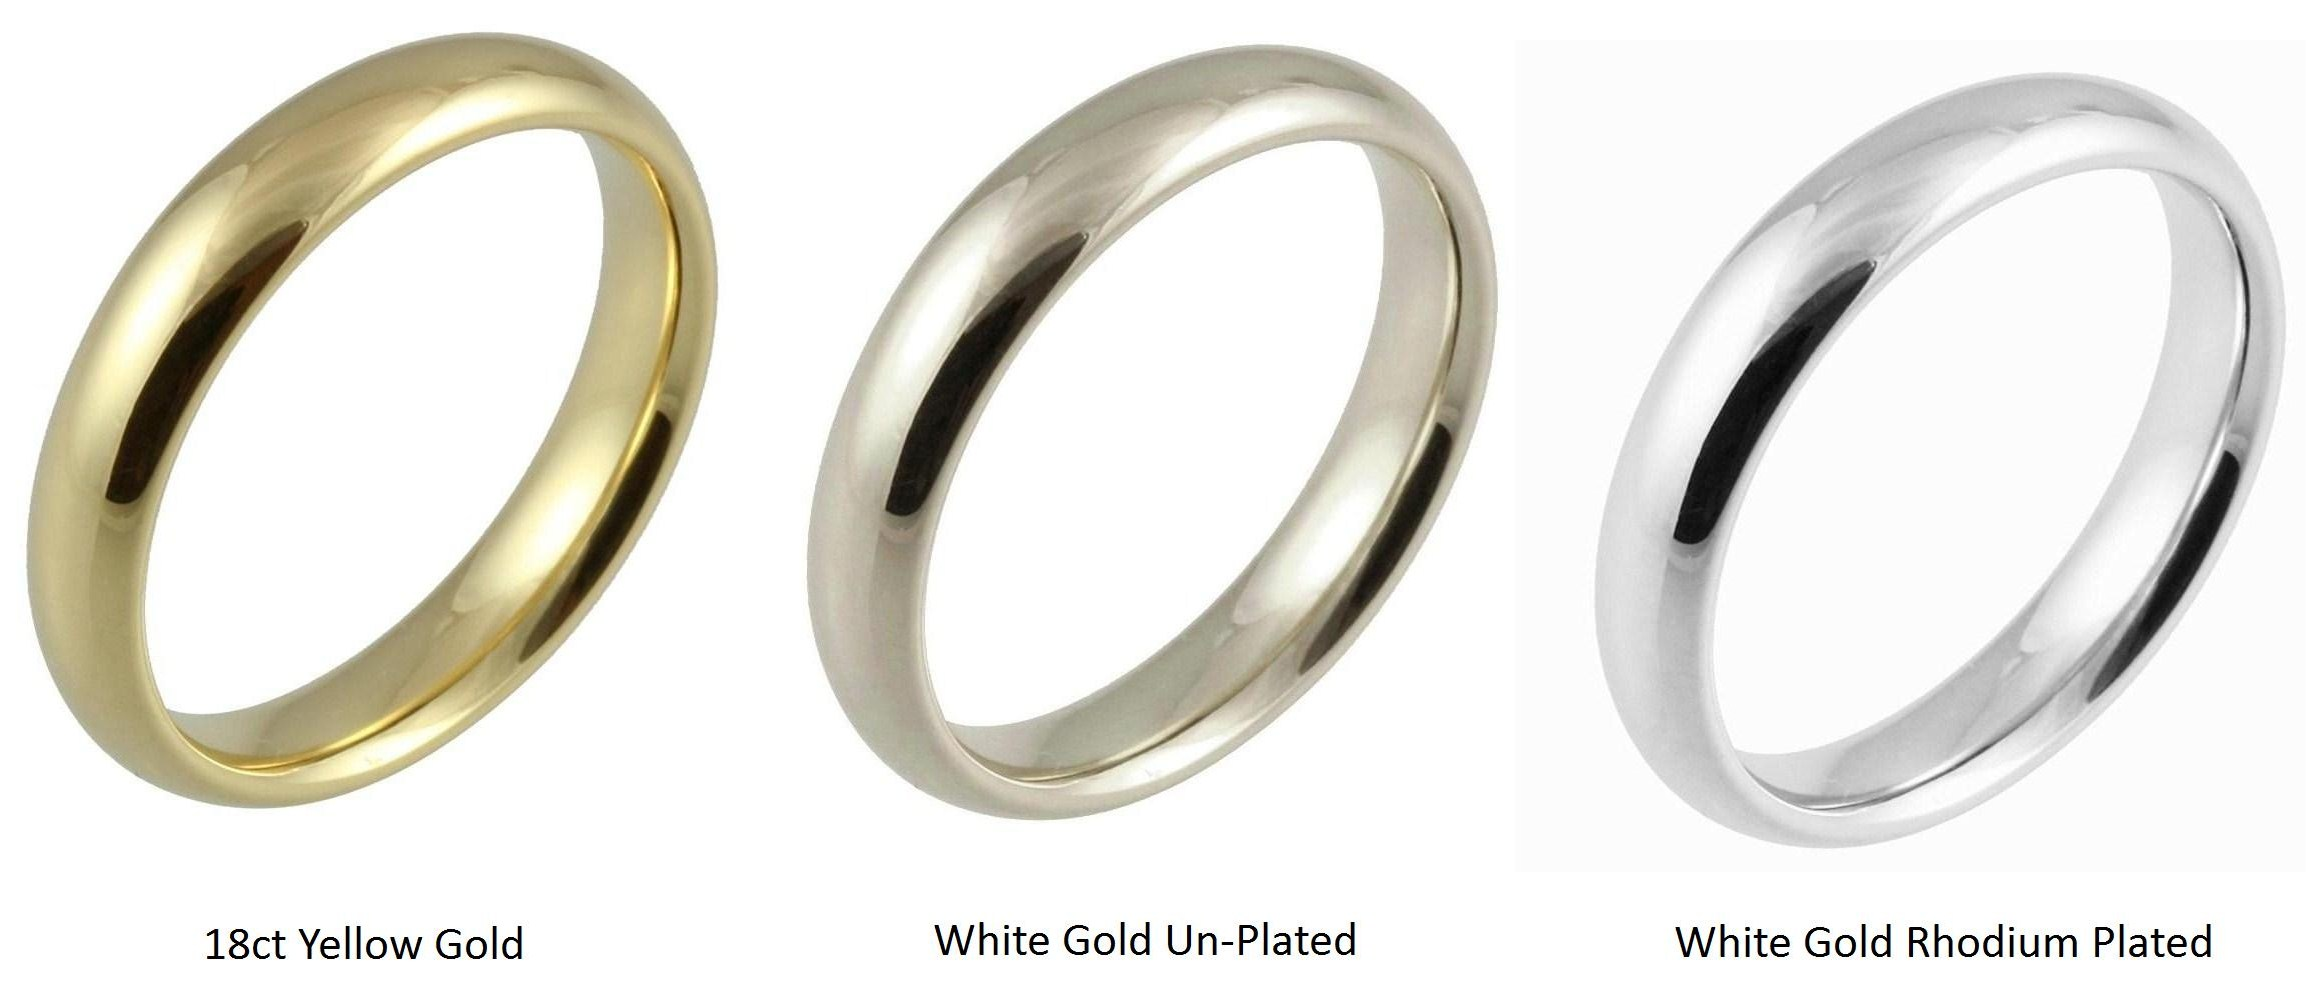 Ring metal comparison